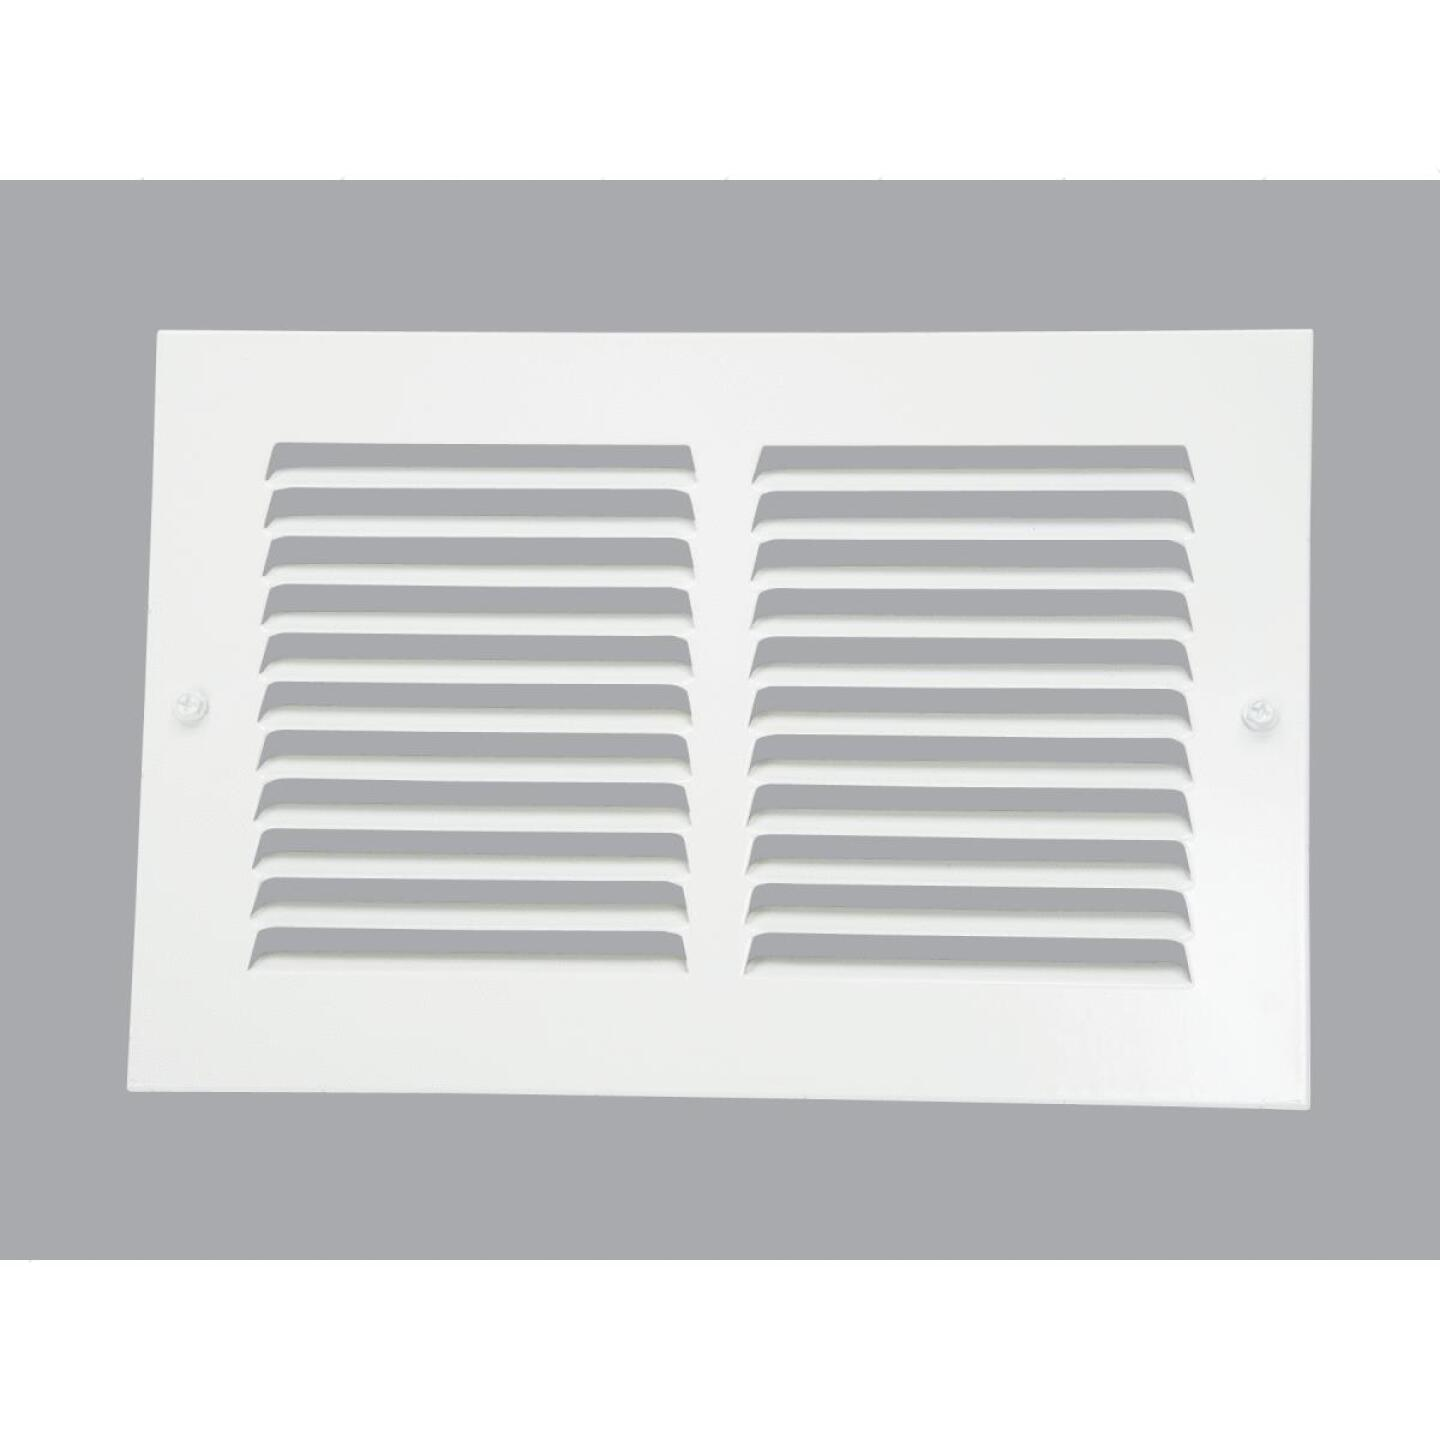 Home Impressions 6 In. x 10 In. Stamped Steel Return Air Grille Image 1